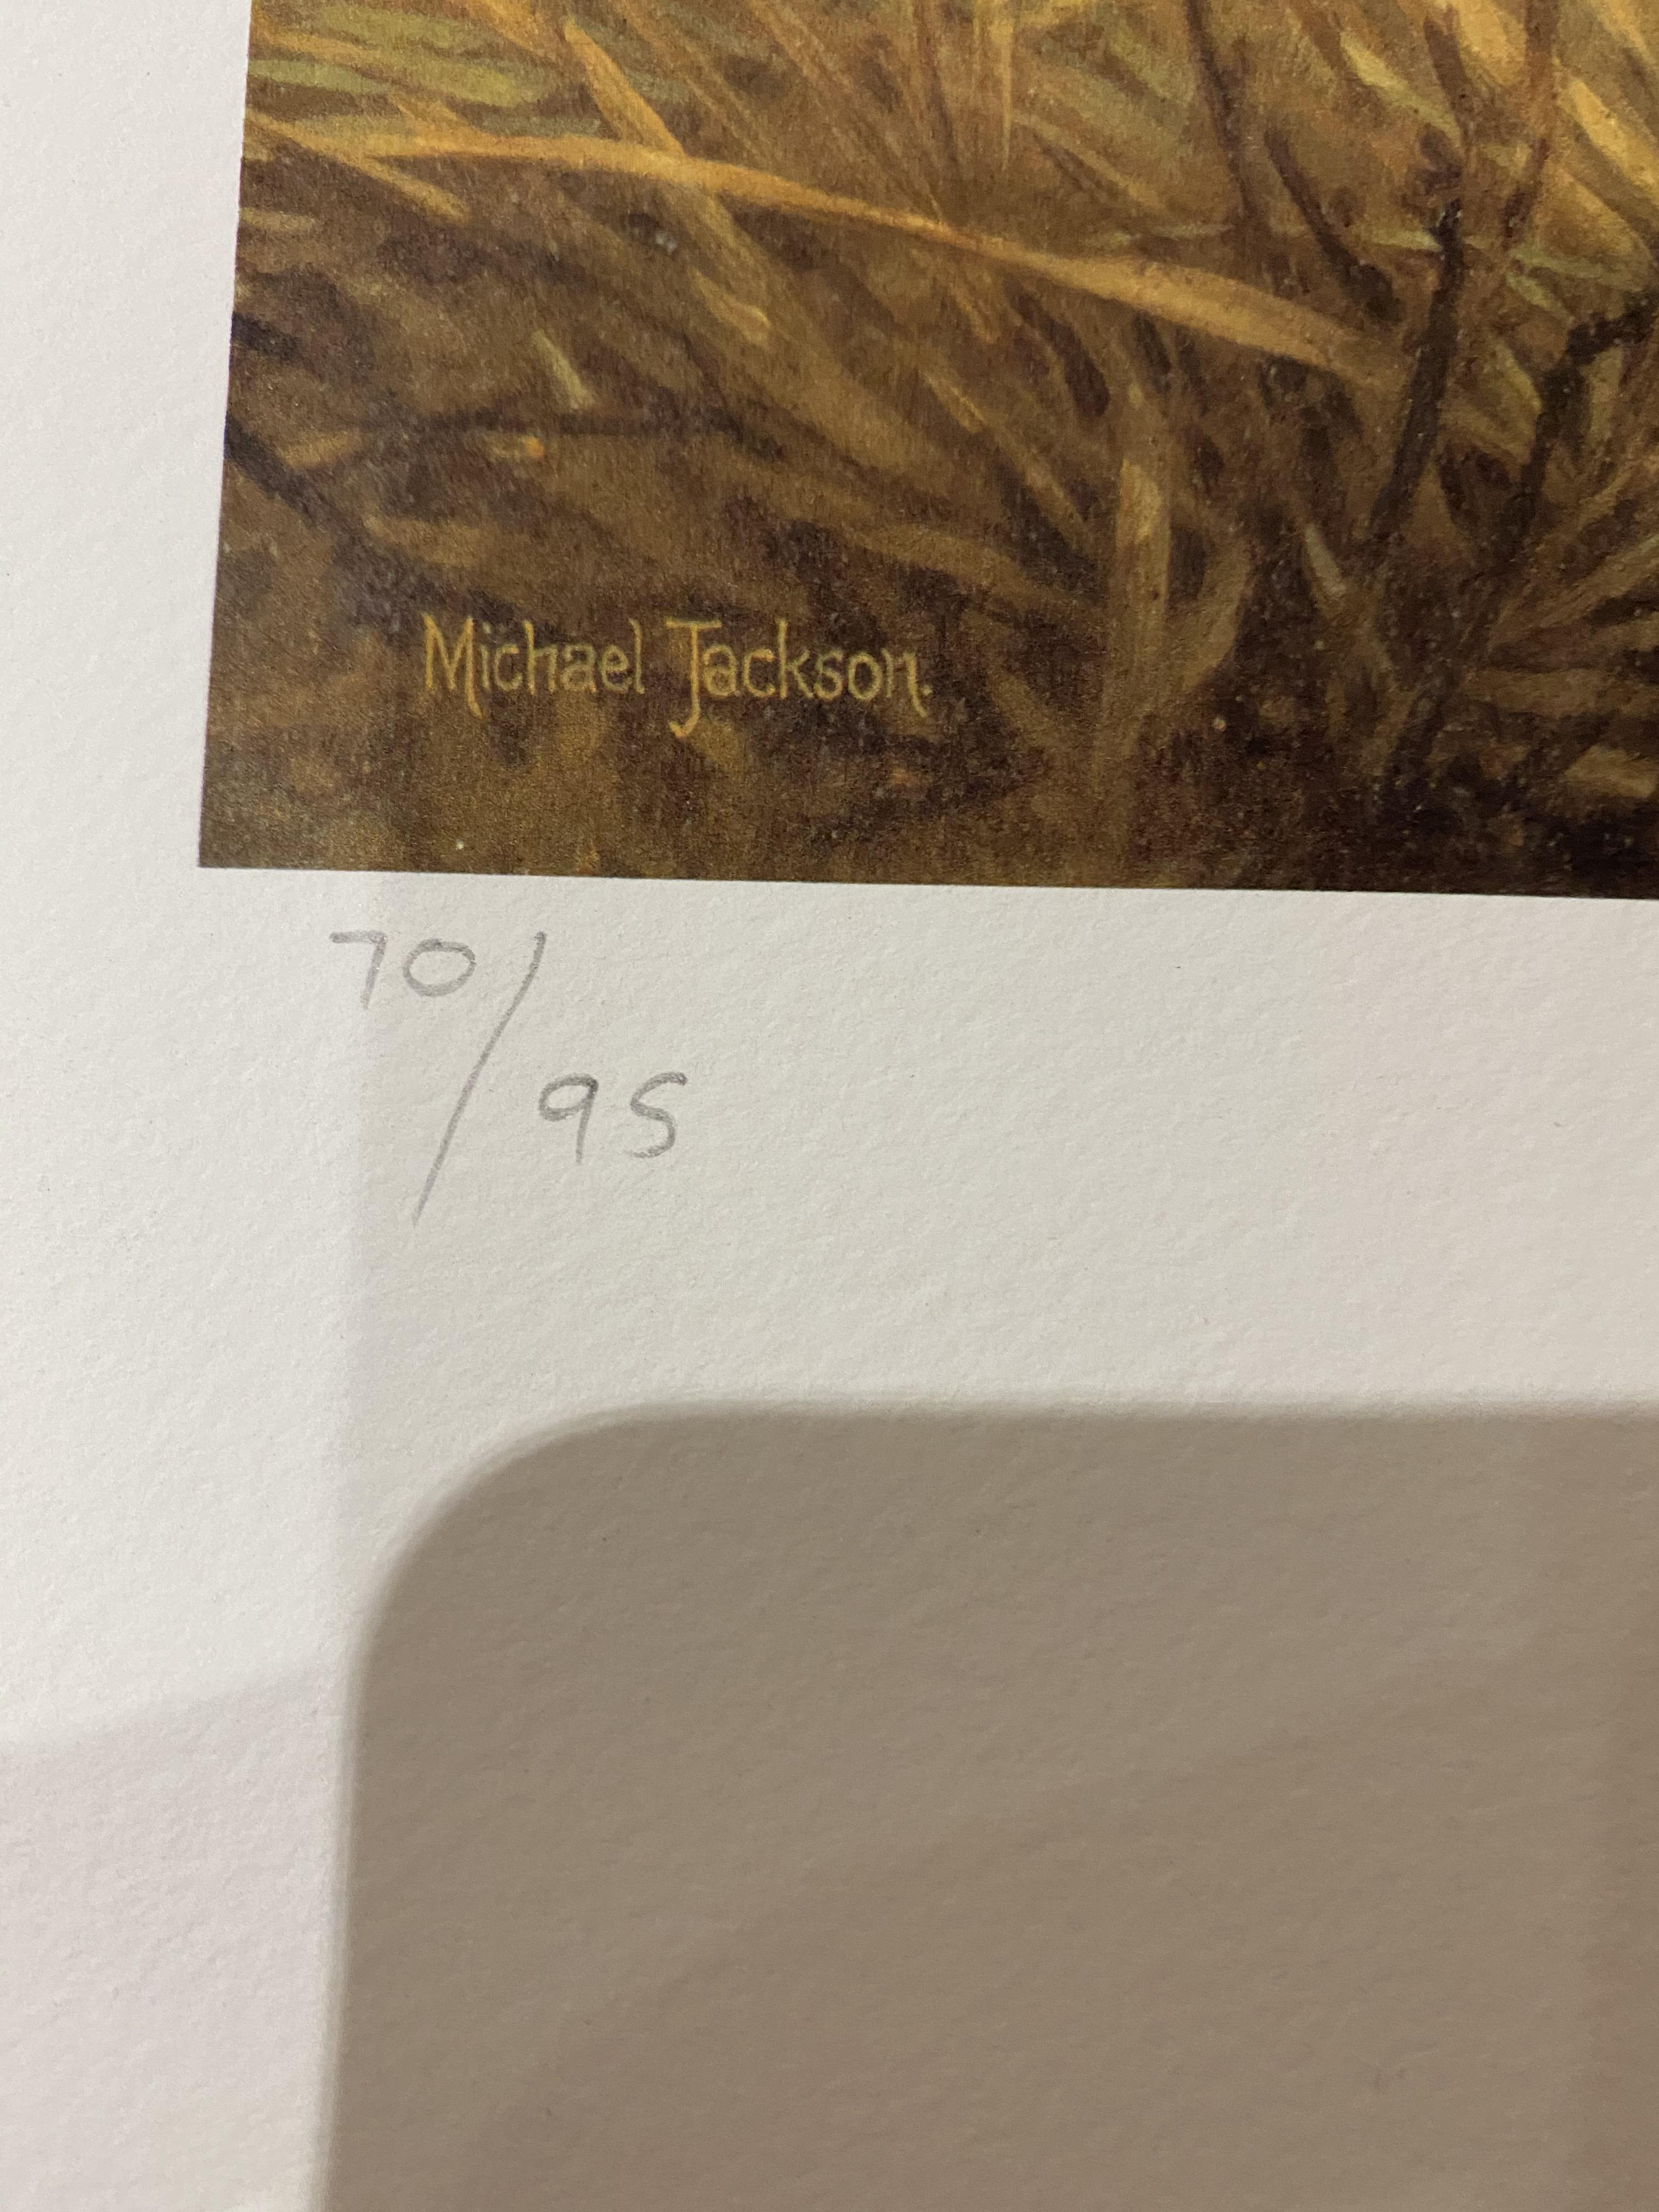 Michael Jackson Signed Limited Edition Print 'Cheetahs' With C.O.A. - Image 4 of 7